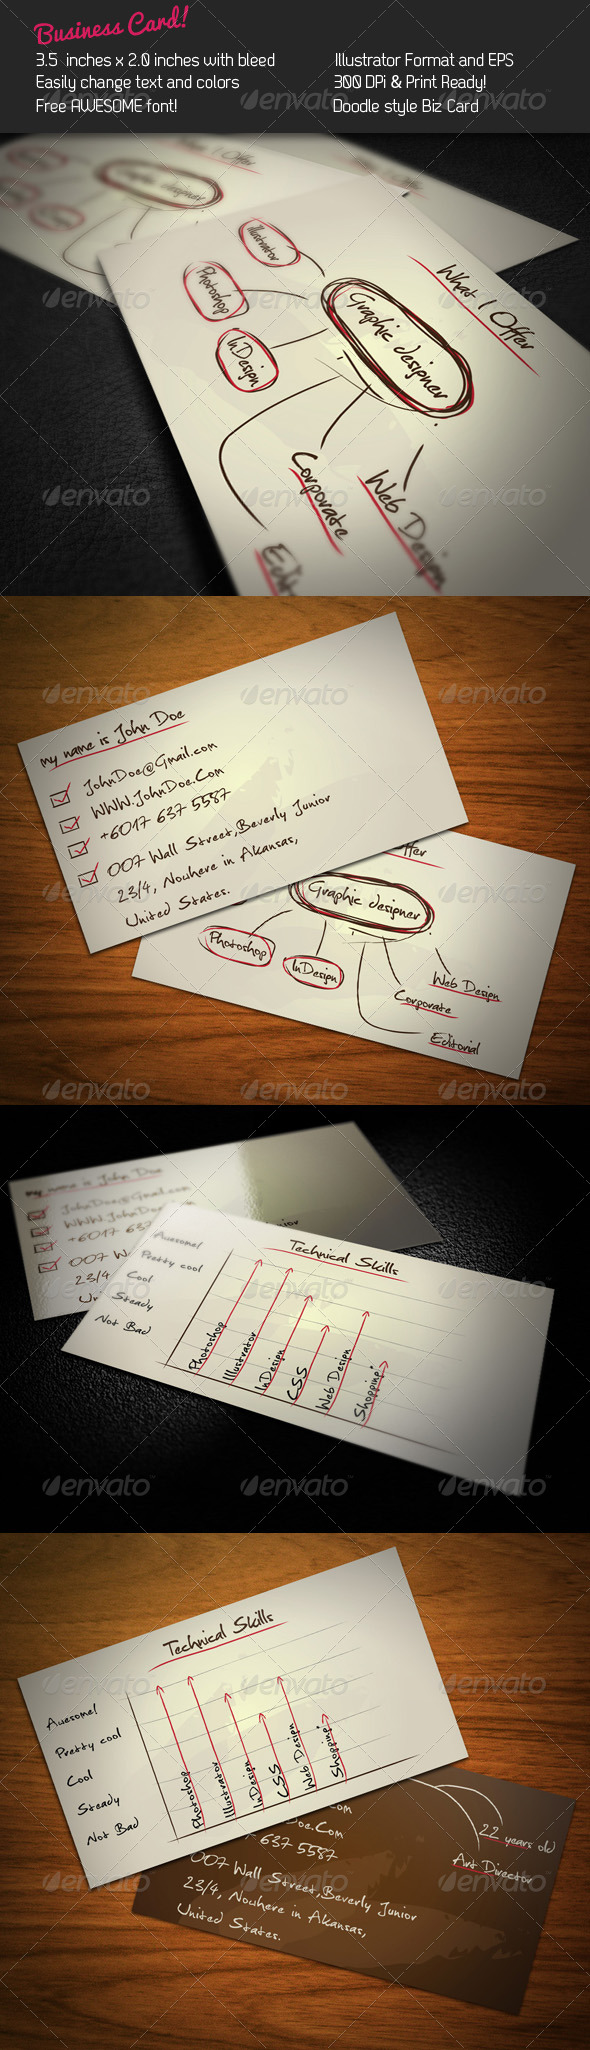 Doodle Business Card - Creative Business Cards